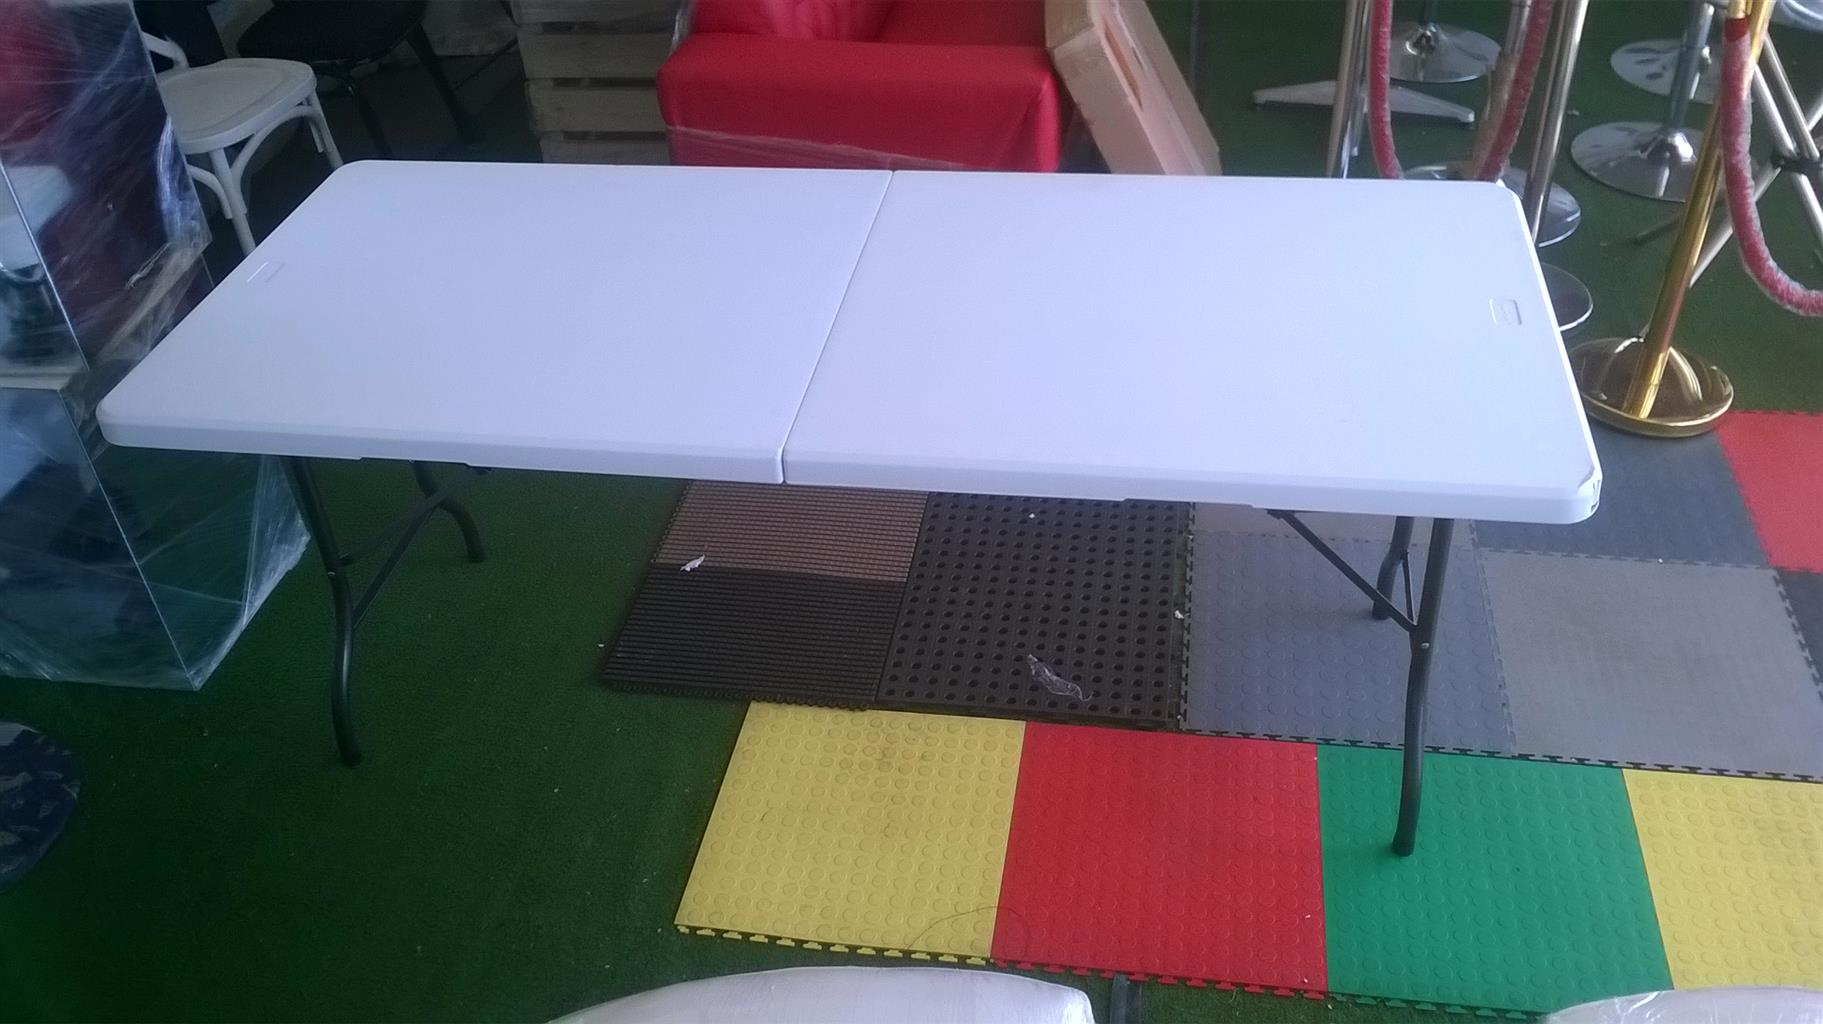 TABLE - RECTANGLE 1.8m PLASTIC FOLD UP FOR SALE AT A BARGAIN PRICE